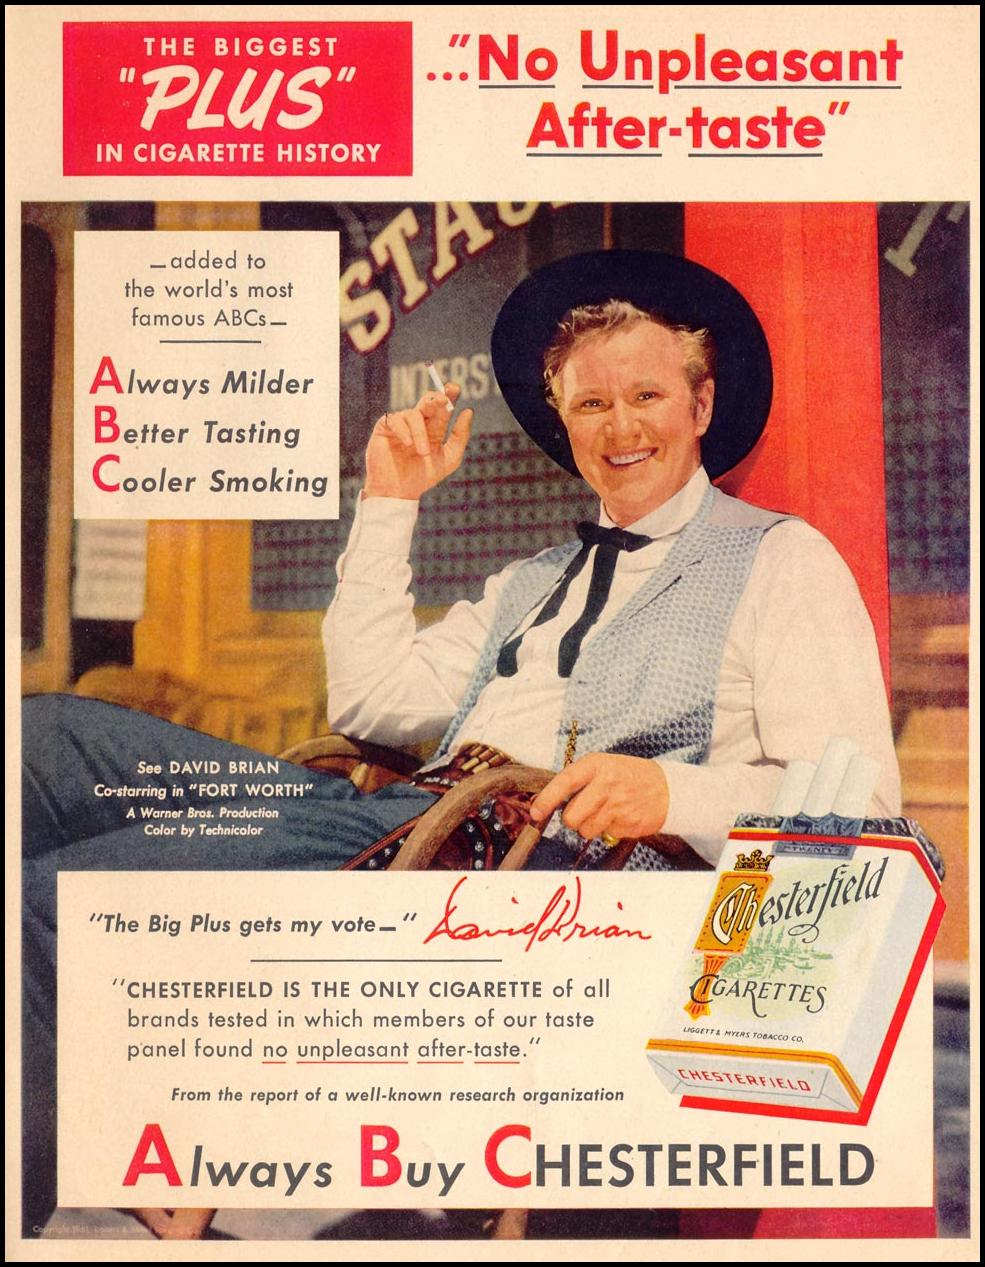 CHESTERFIELD CIGARETTES LIFE 07/30/1951 p. 27